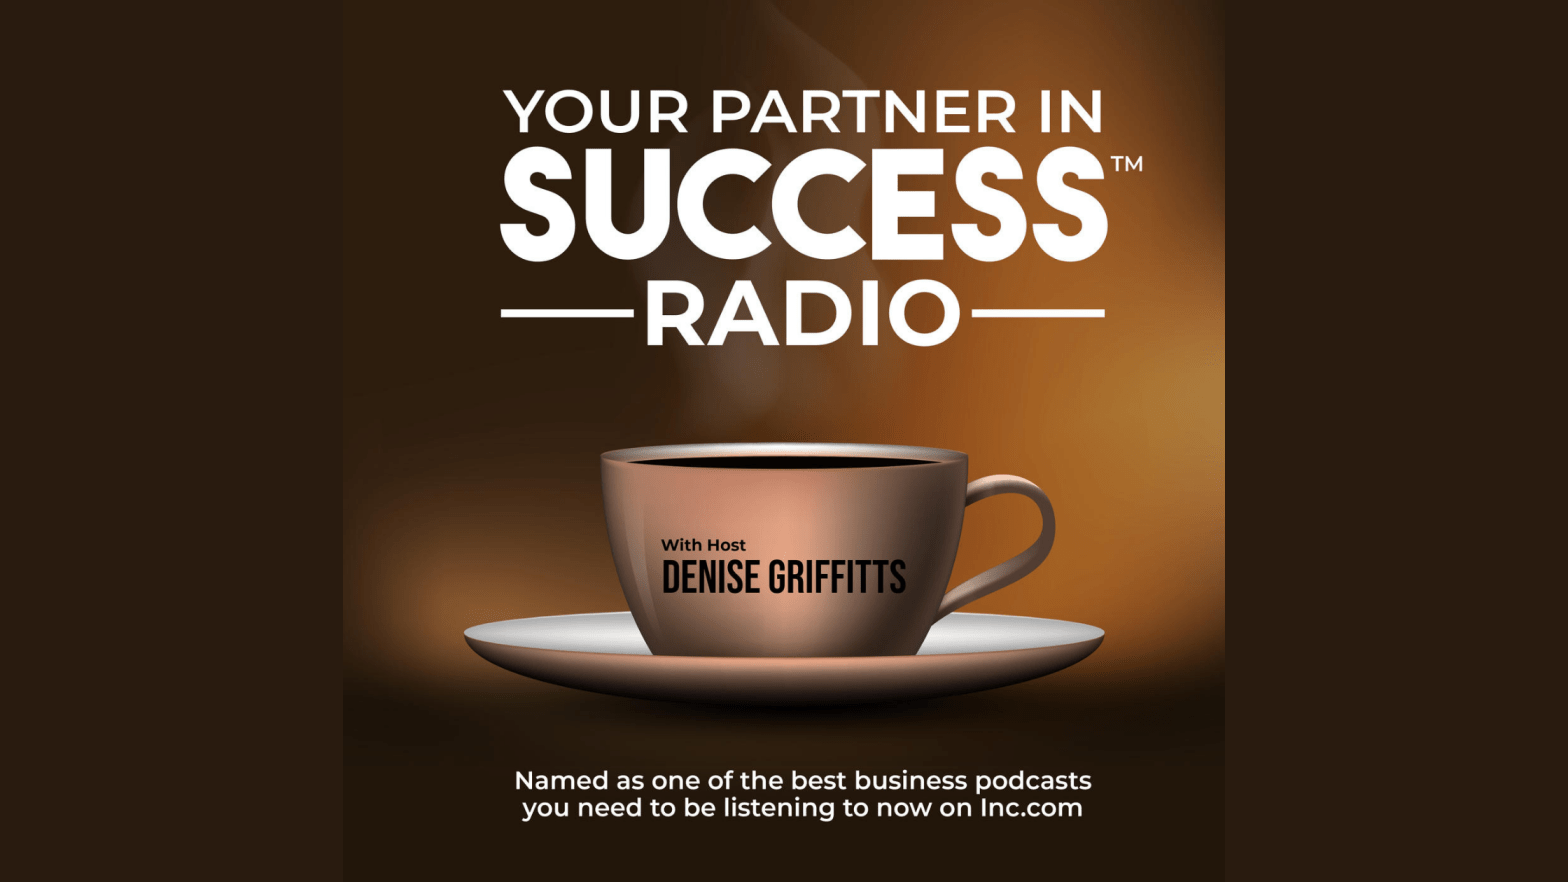 your partner in success radio with denise griffitts and Jeff Heggie podcast